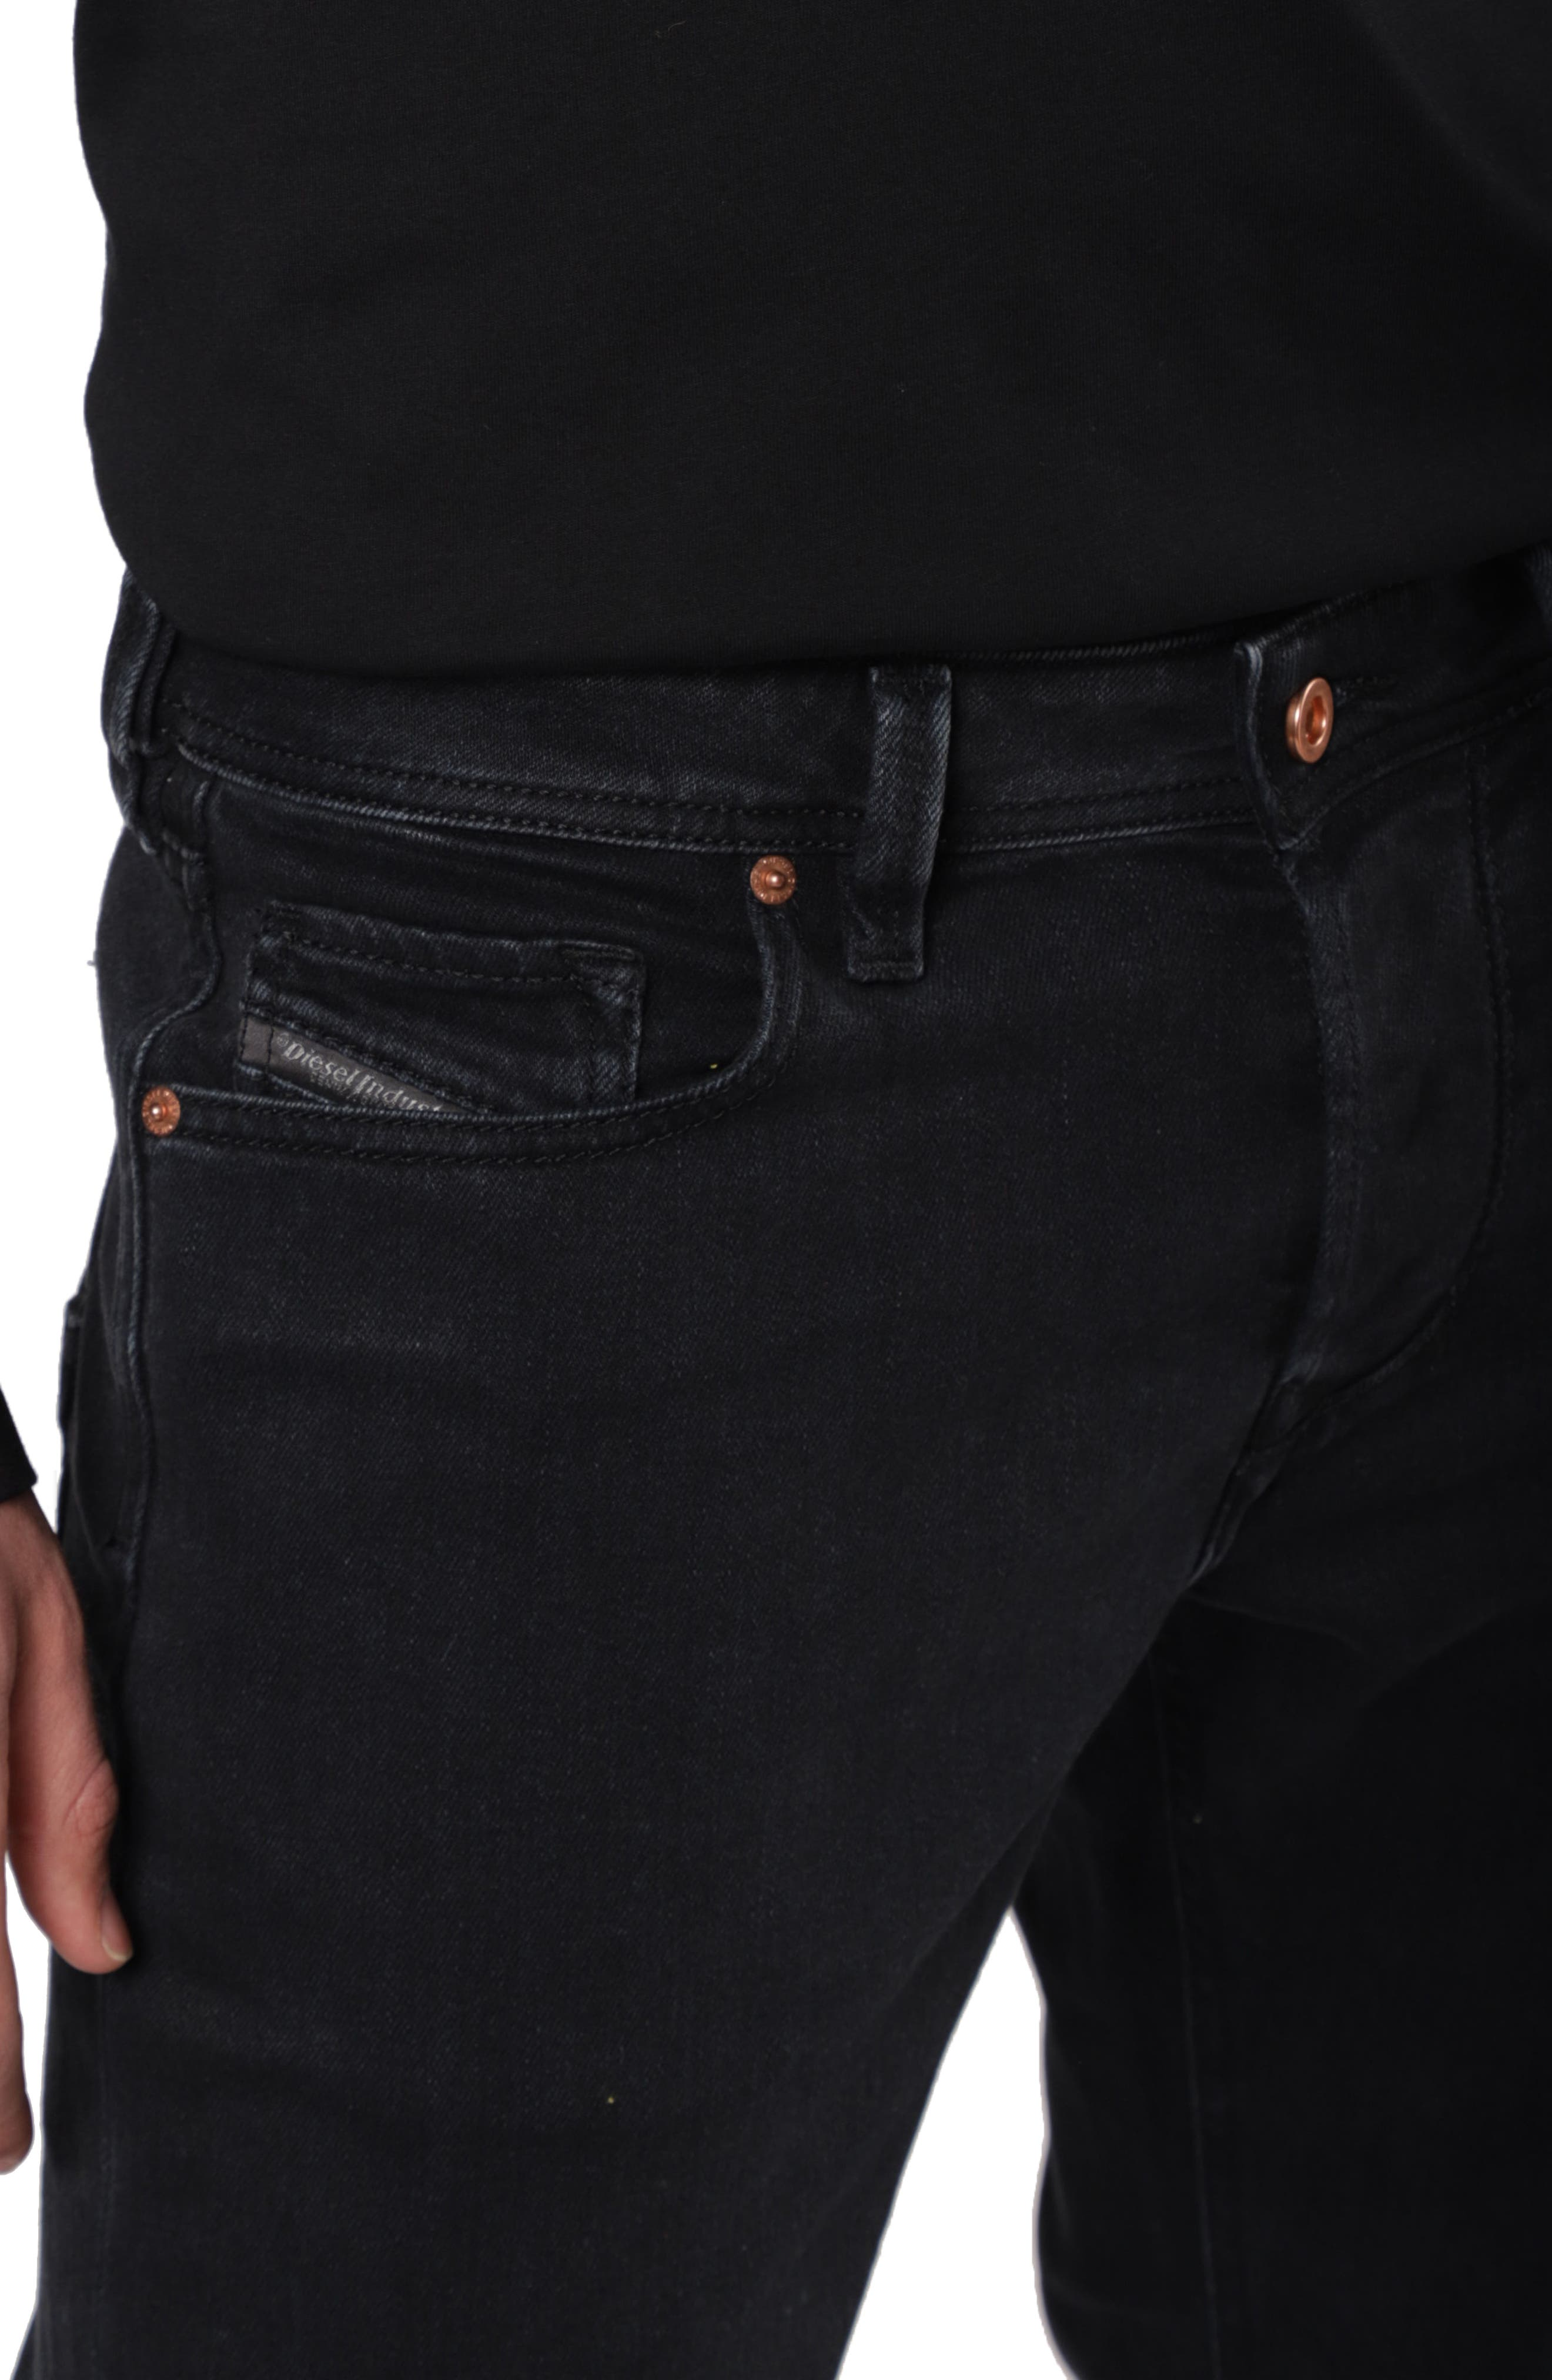 Larkee Relaxed Fit Jeans,                             Alternate thumbnail 3, color,                             008